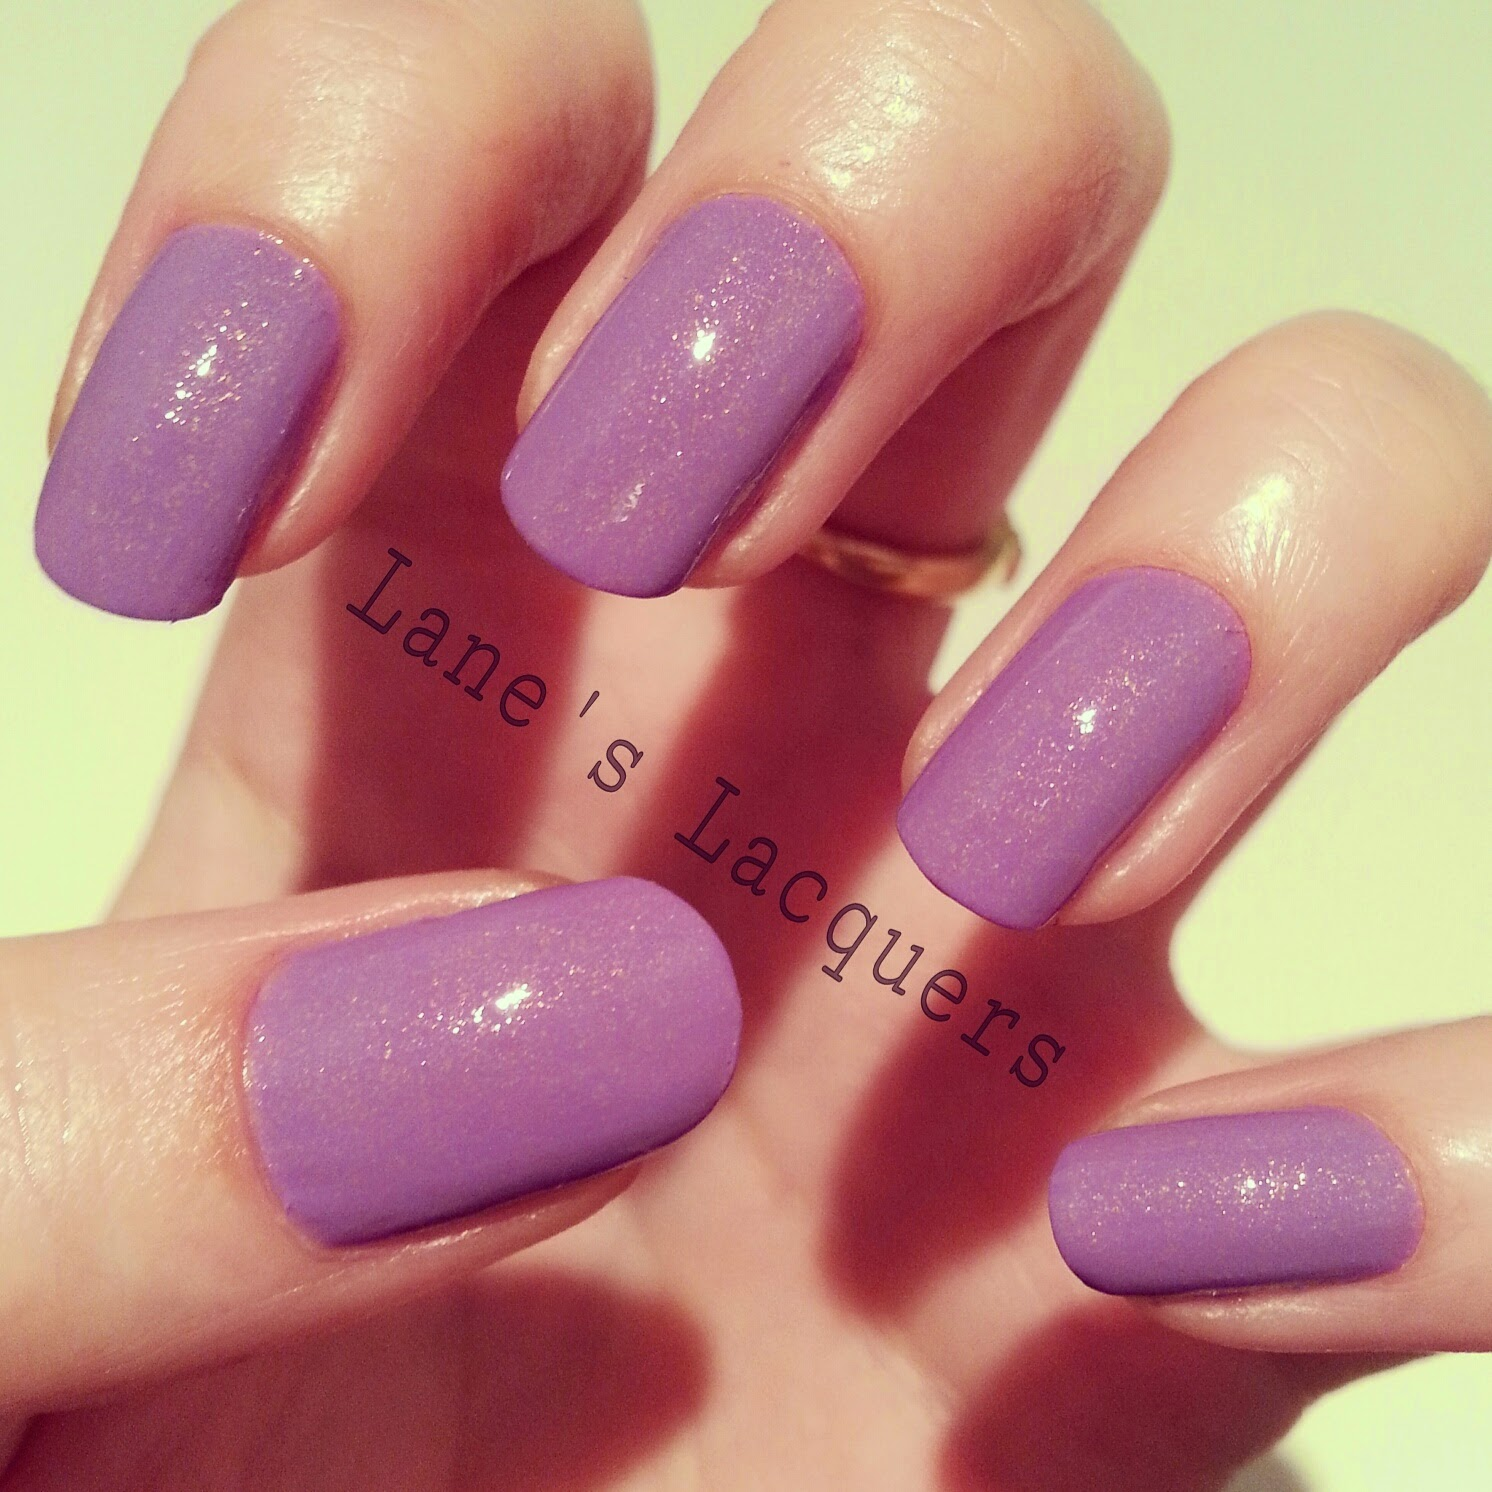 new-models-own-luxe-collection-pear-purple-swatch-manicure